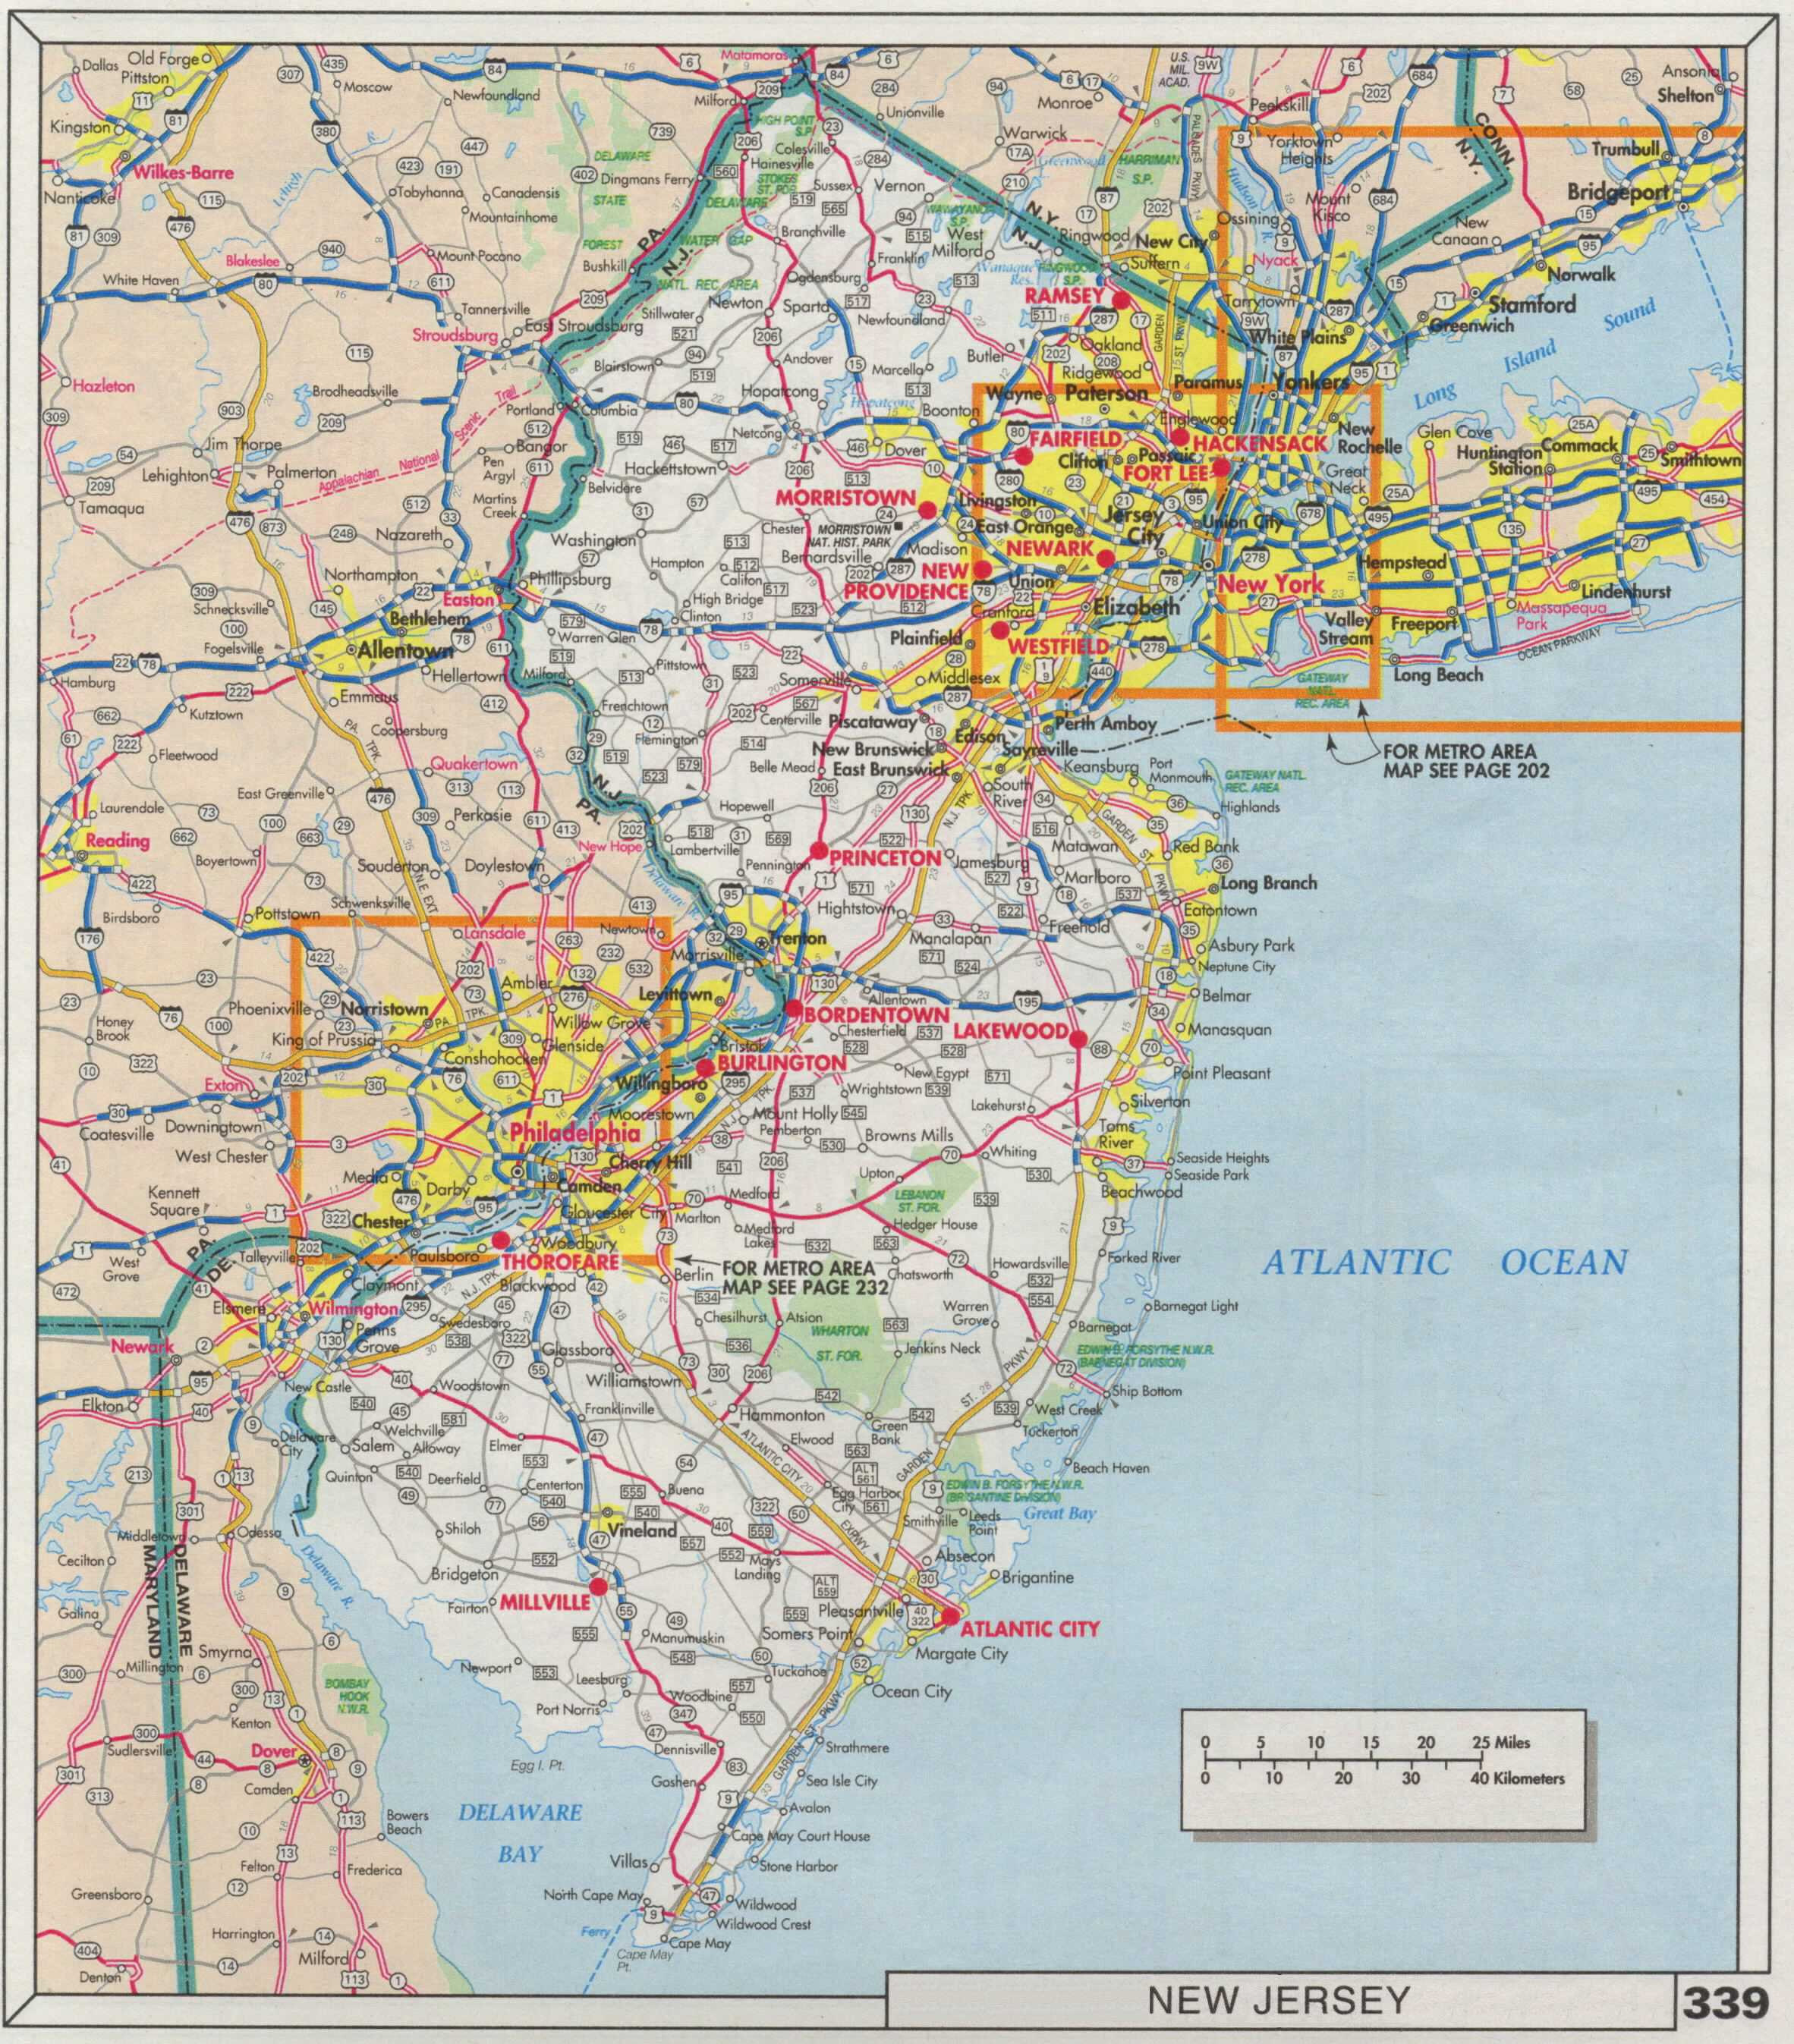 The Web Shell - Maps of nj